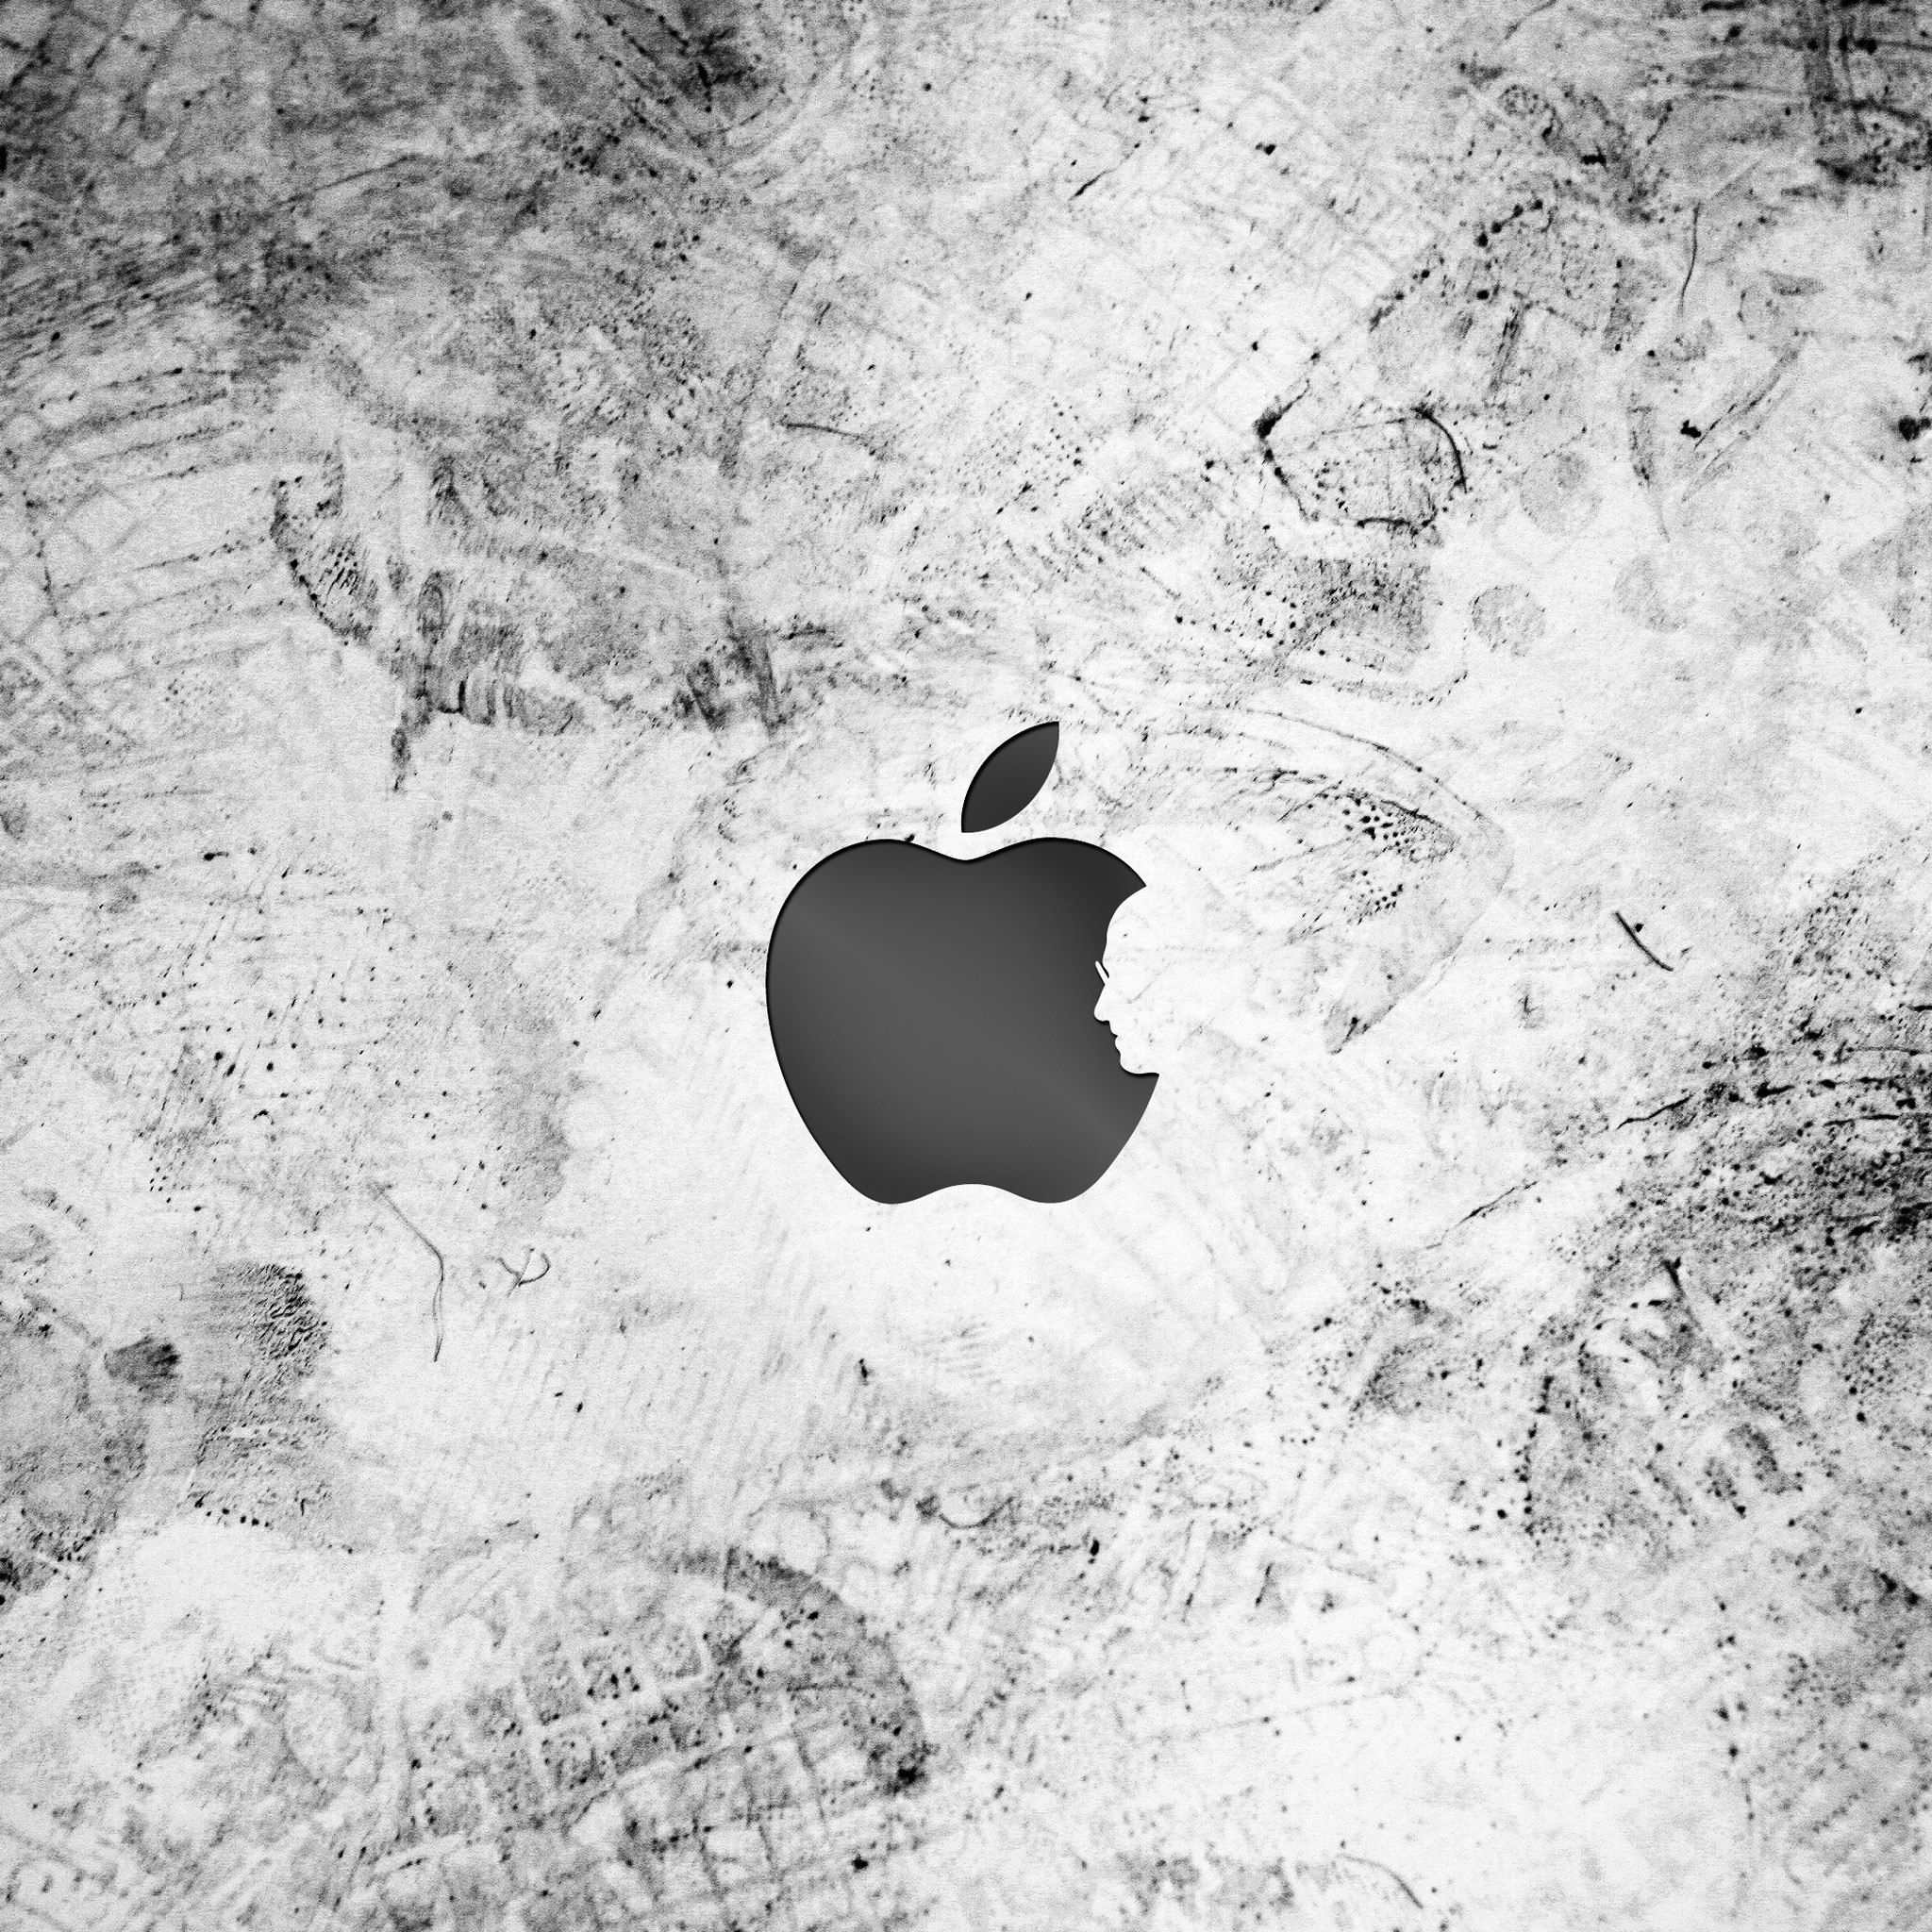 Apple Jobs 3 Wallpapers iPad Apple Jobs   iPad